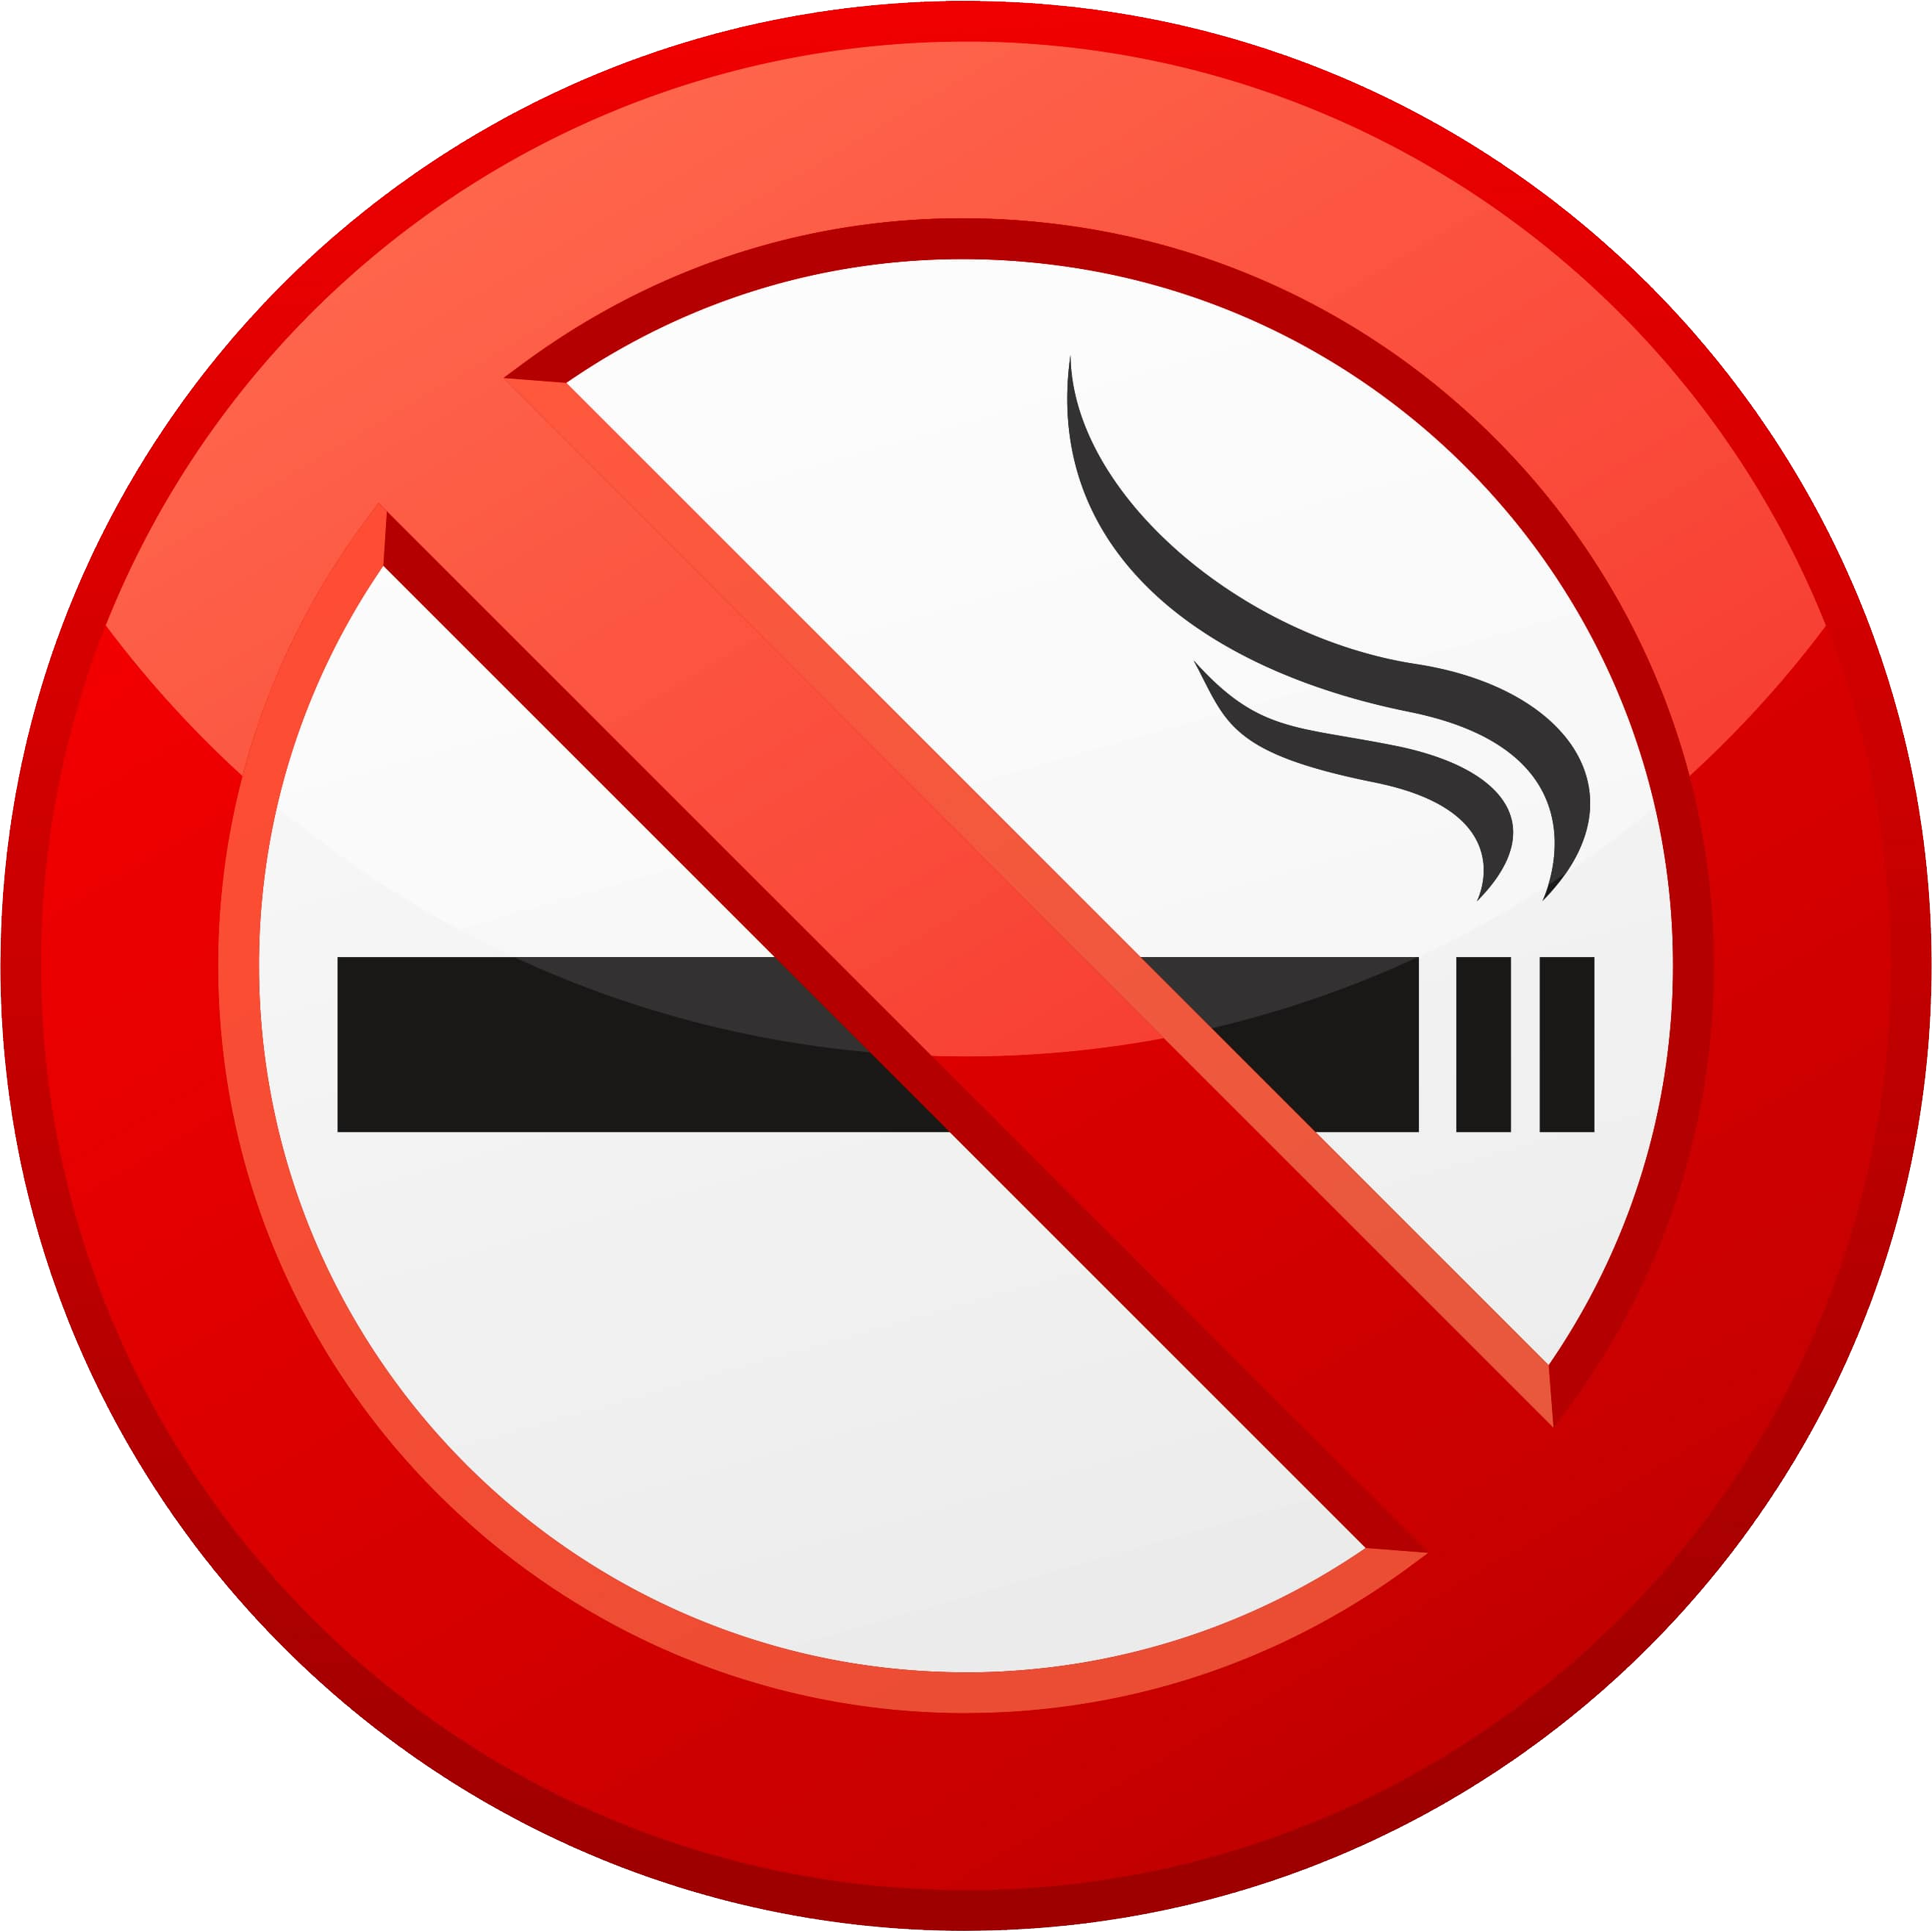 No smoking PNG images free download.